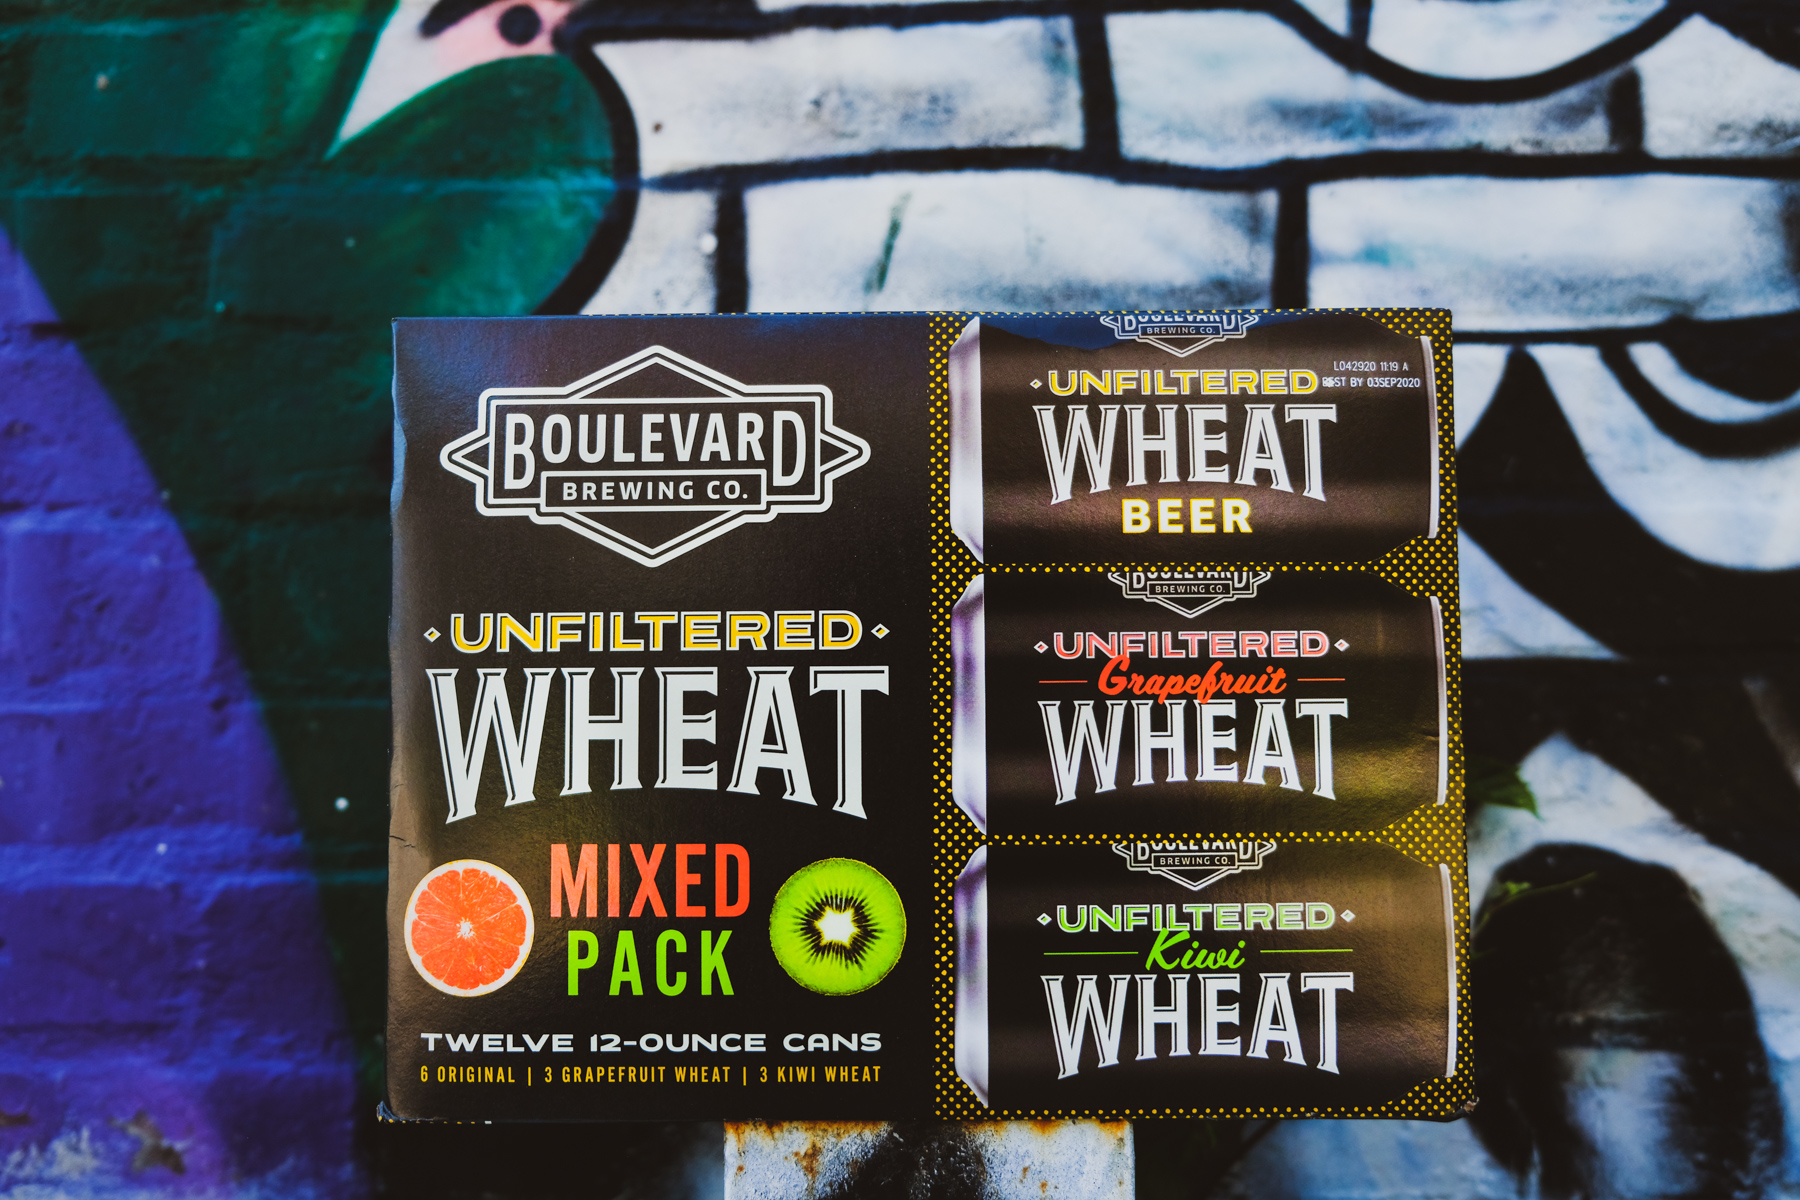 Introducing the Unfiltered Wheat Mixed Pack